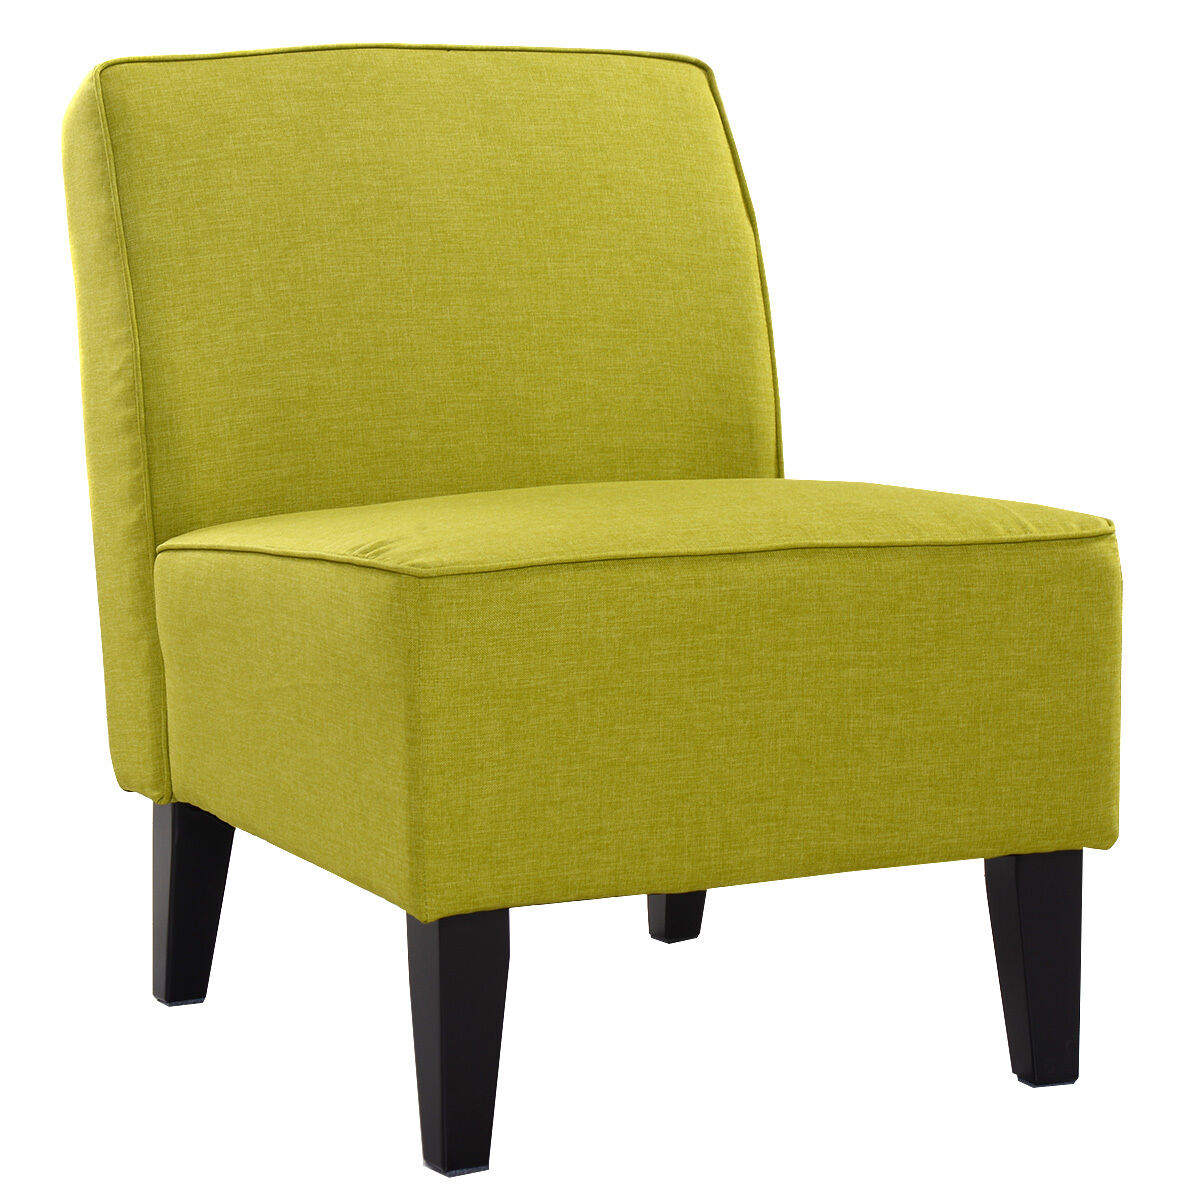 Accent Chairs Modern Deco Accent Chair Solid Armless Living Room Bedroom Office